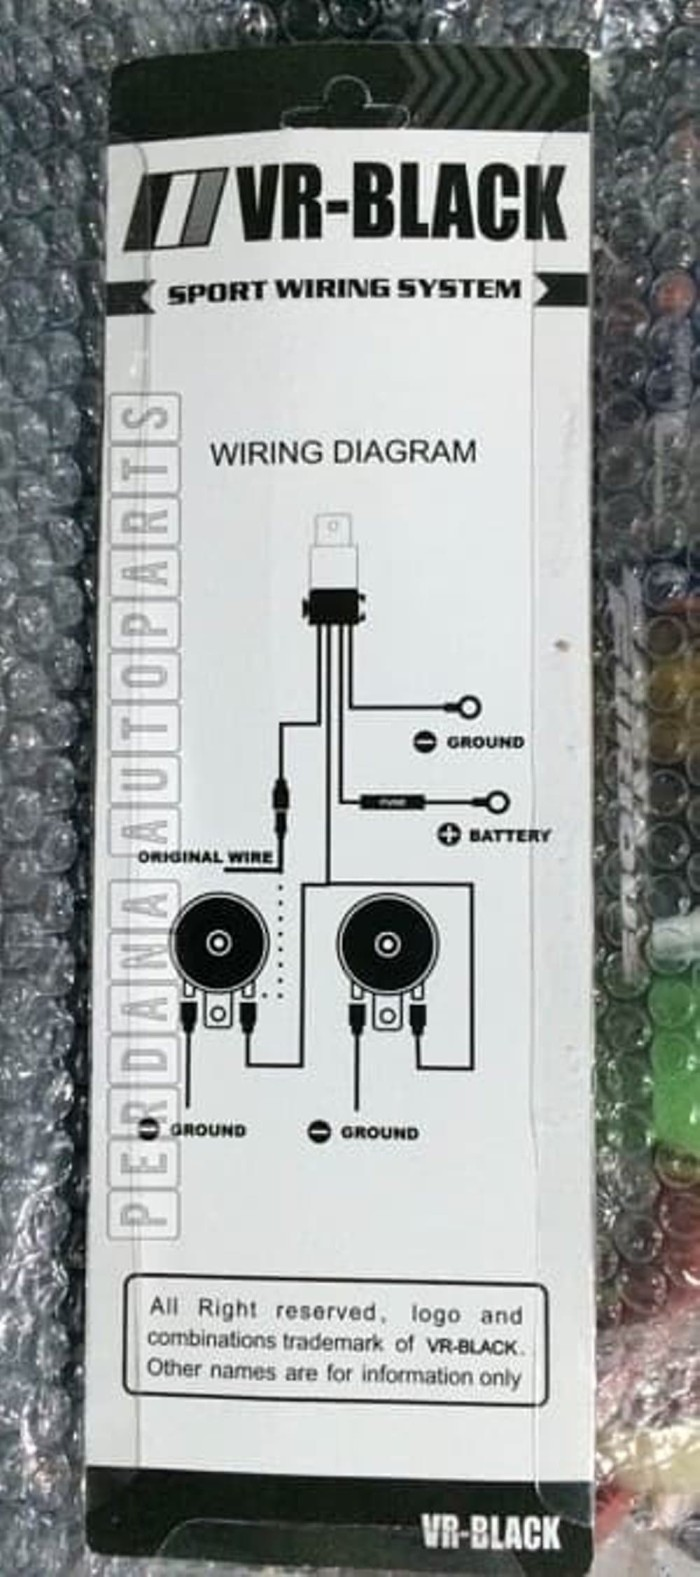 Wiring Diagram For Hella Relay from ecs7.tokopedia.net